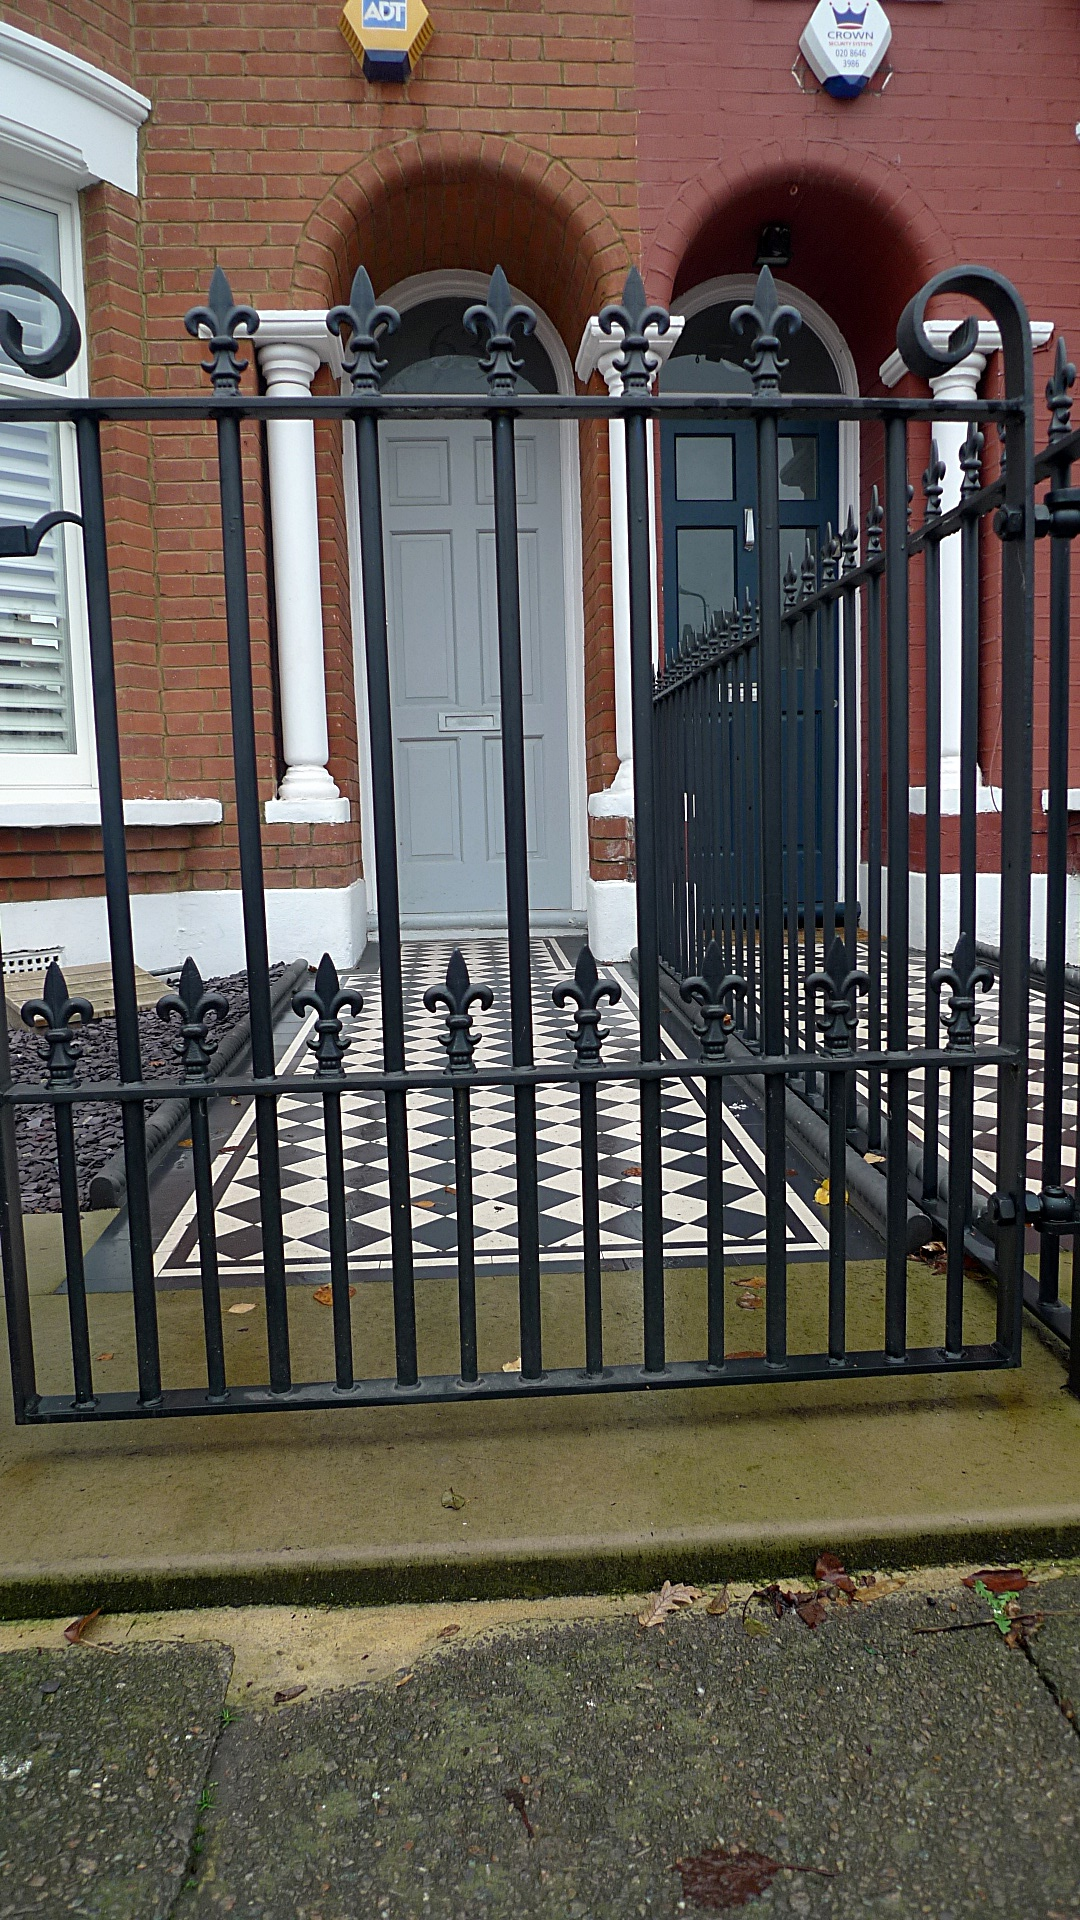 Ornamental stone Victorian mosaic black and white York stone entrance stone metal gate metal rail charcoal rope edge tiles brick garden wall render garden wall Balham Streatham Clapham Battersea London